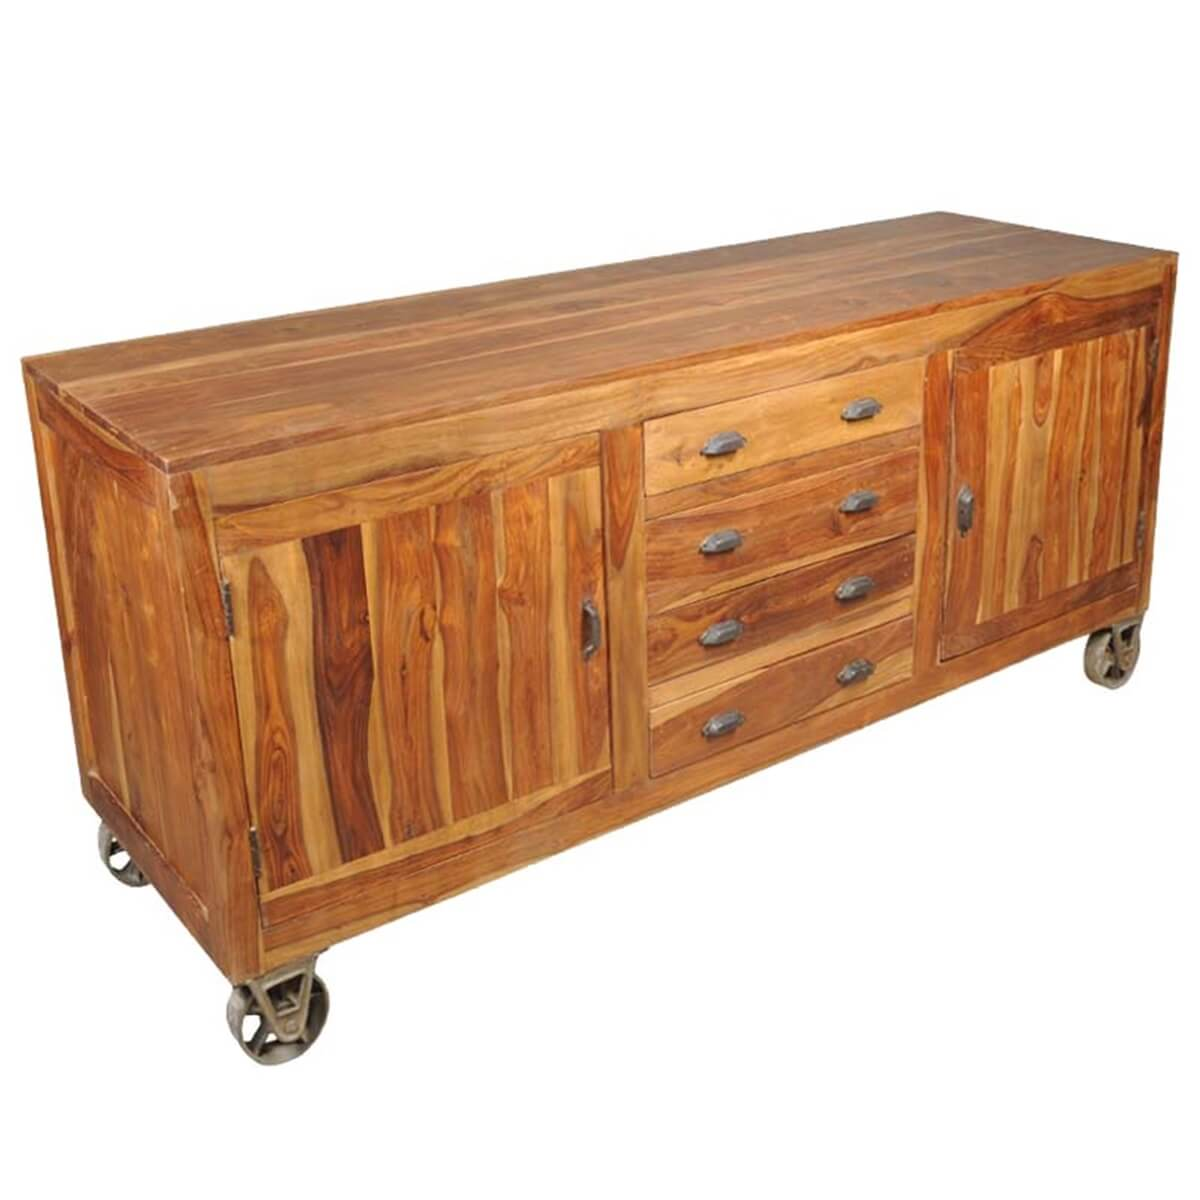 Siena Industrial Style Rustic Solid Wood 4 Drawer Sideboard